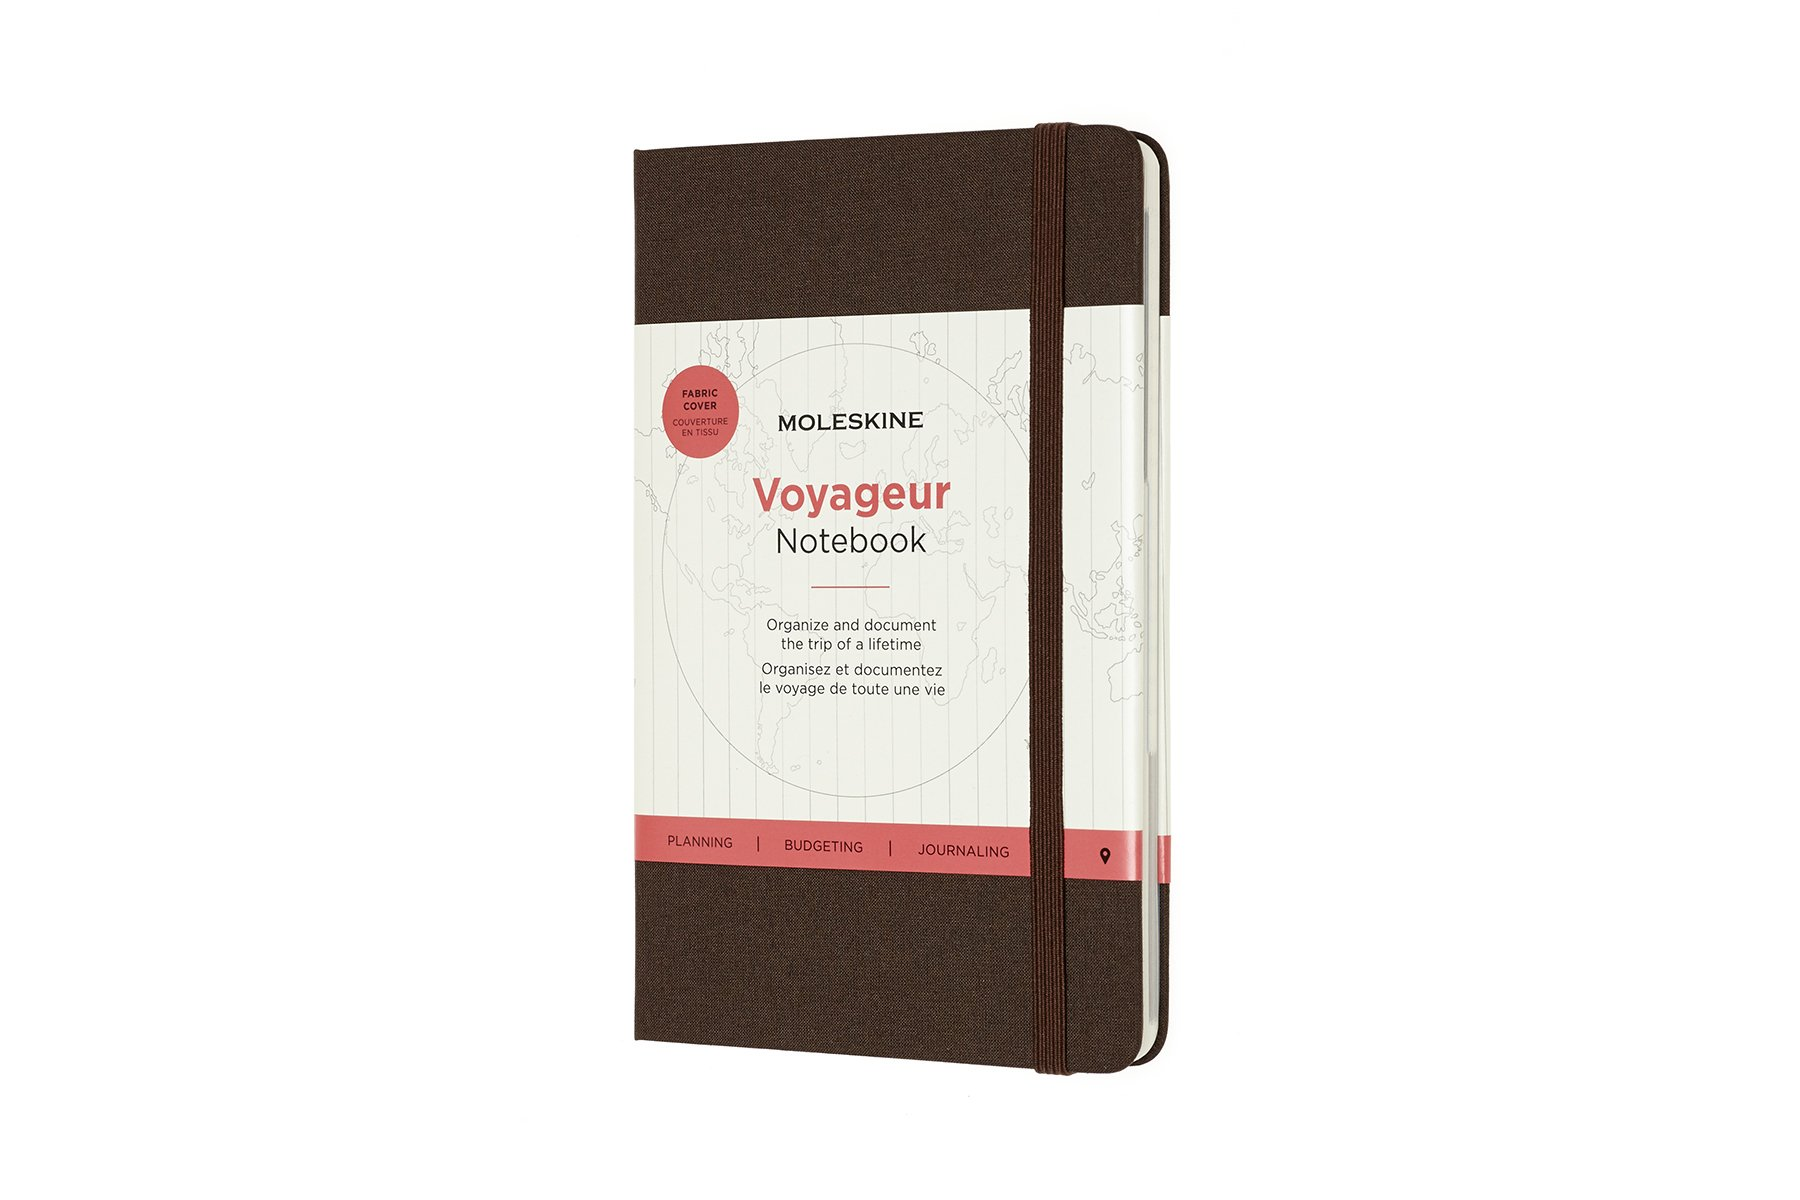 Moleskine Voyageur Hard Cover Notebook, Mixed, Coffee Brown